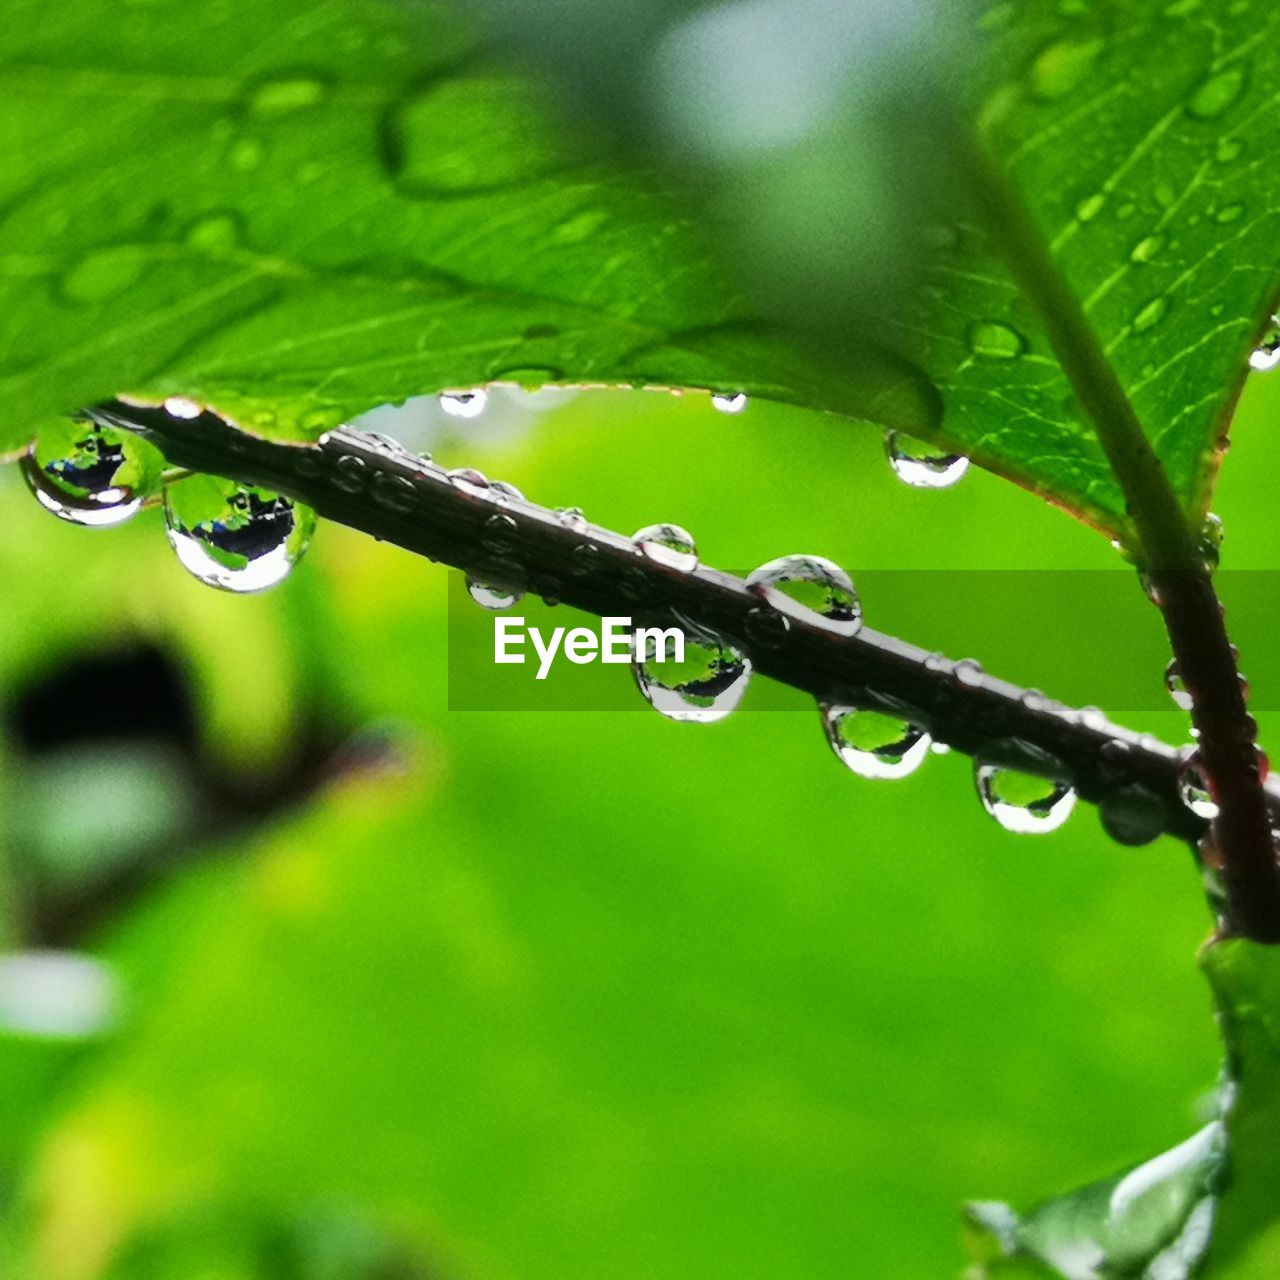 drop, water, wet, plant part, plant, leaf, green color, nature, close-up, growth, rain, raindrop, no people, selective focus, beauty in nature, freshness, dew, day, purity, outdoors, rainy season, blade of grass, leaves